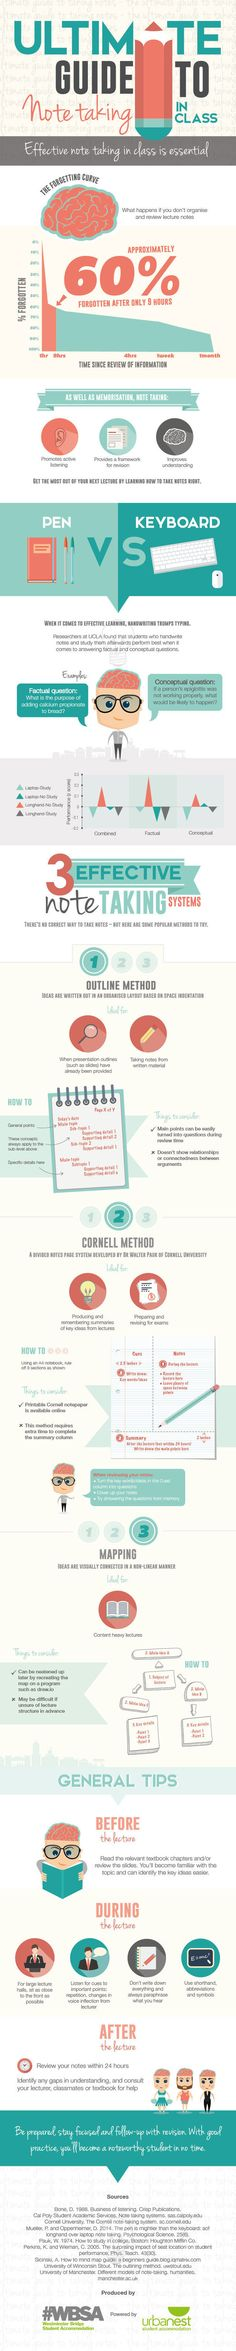 The Ultimate Guide to Note Taking in Class - Infographic